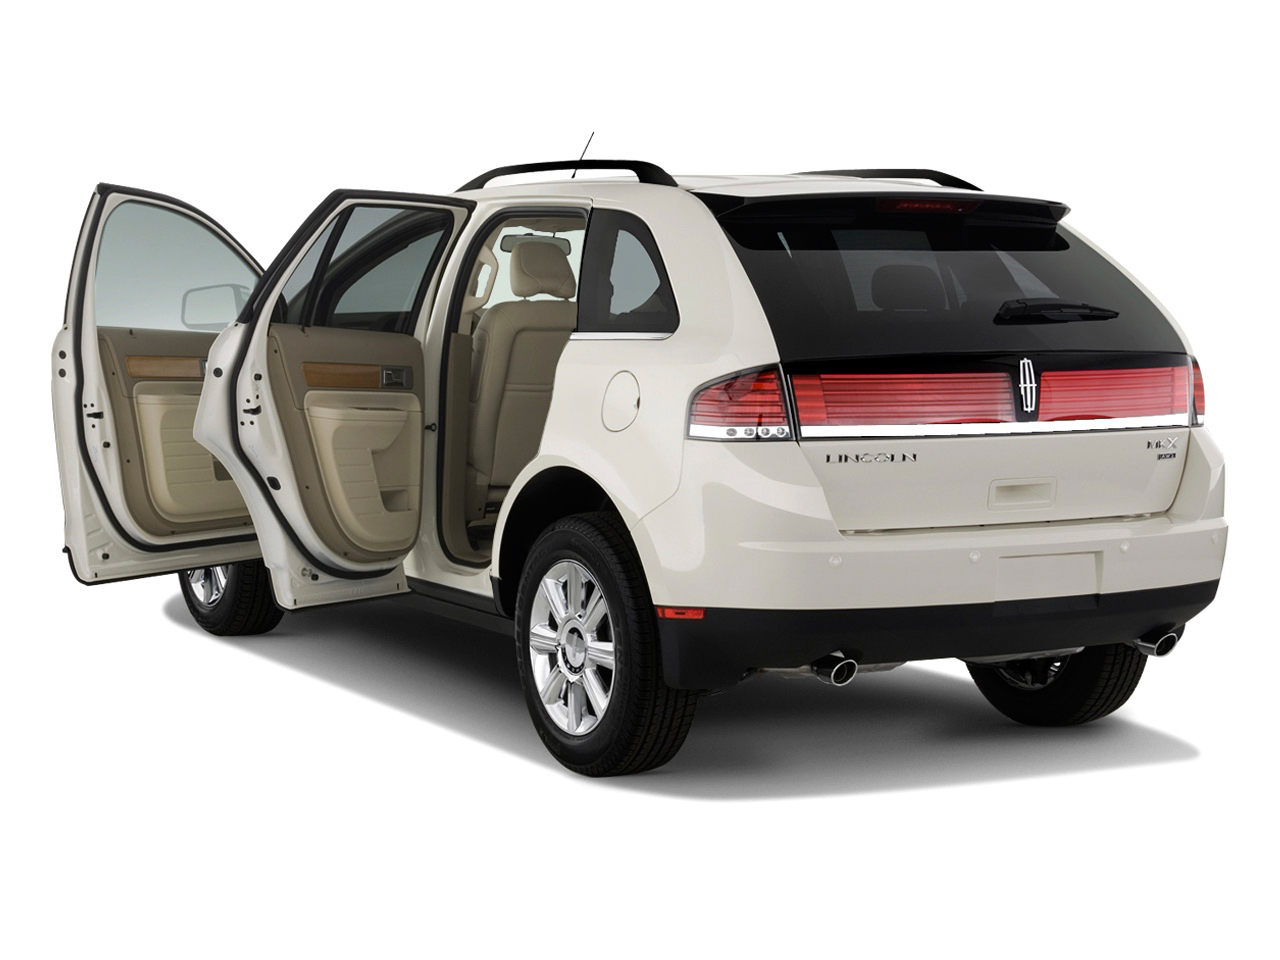 2009 Lincoln Mkx Awd Lincoln Midsize Crossover Suv Review